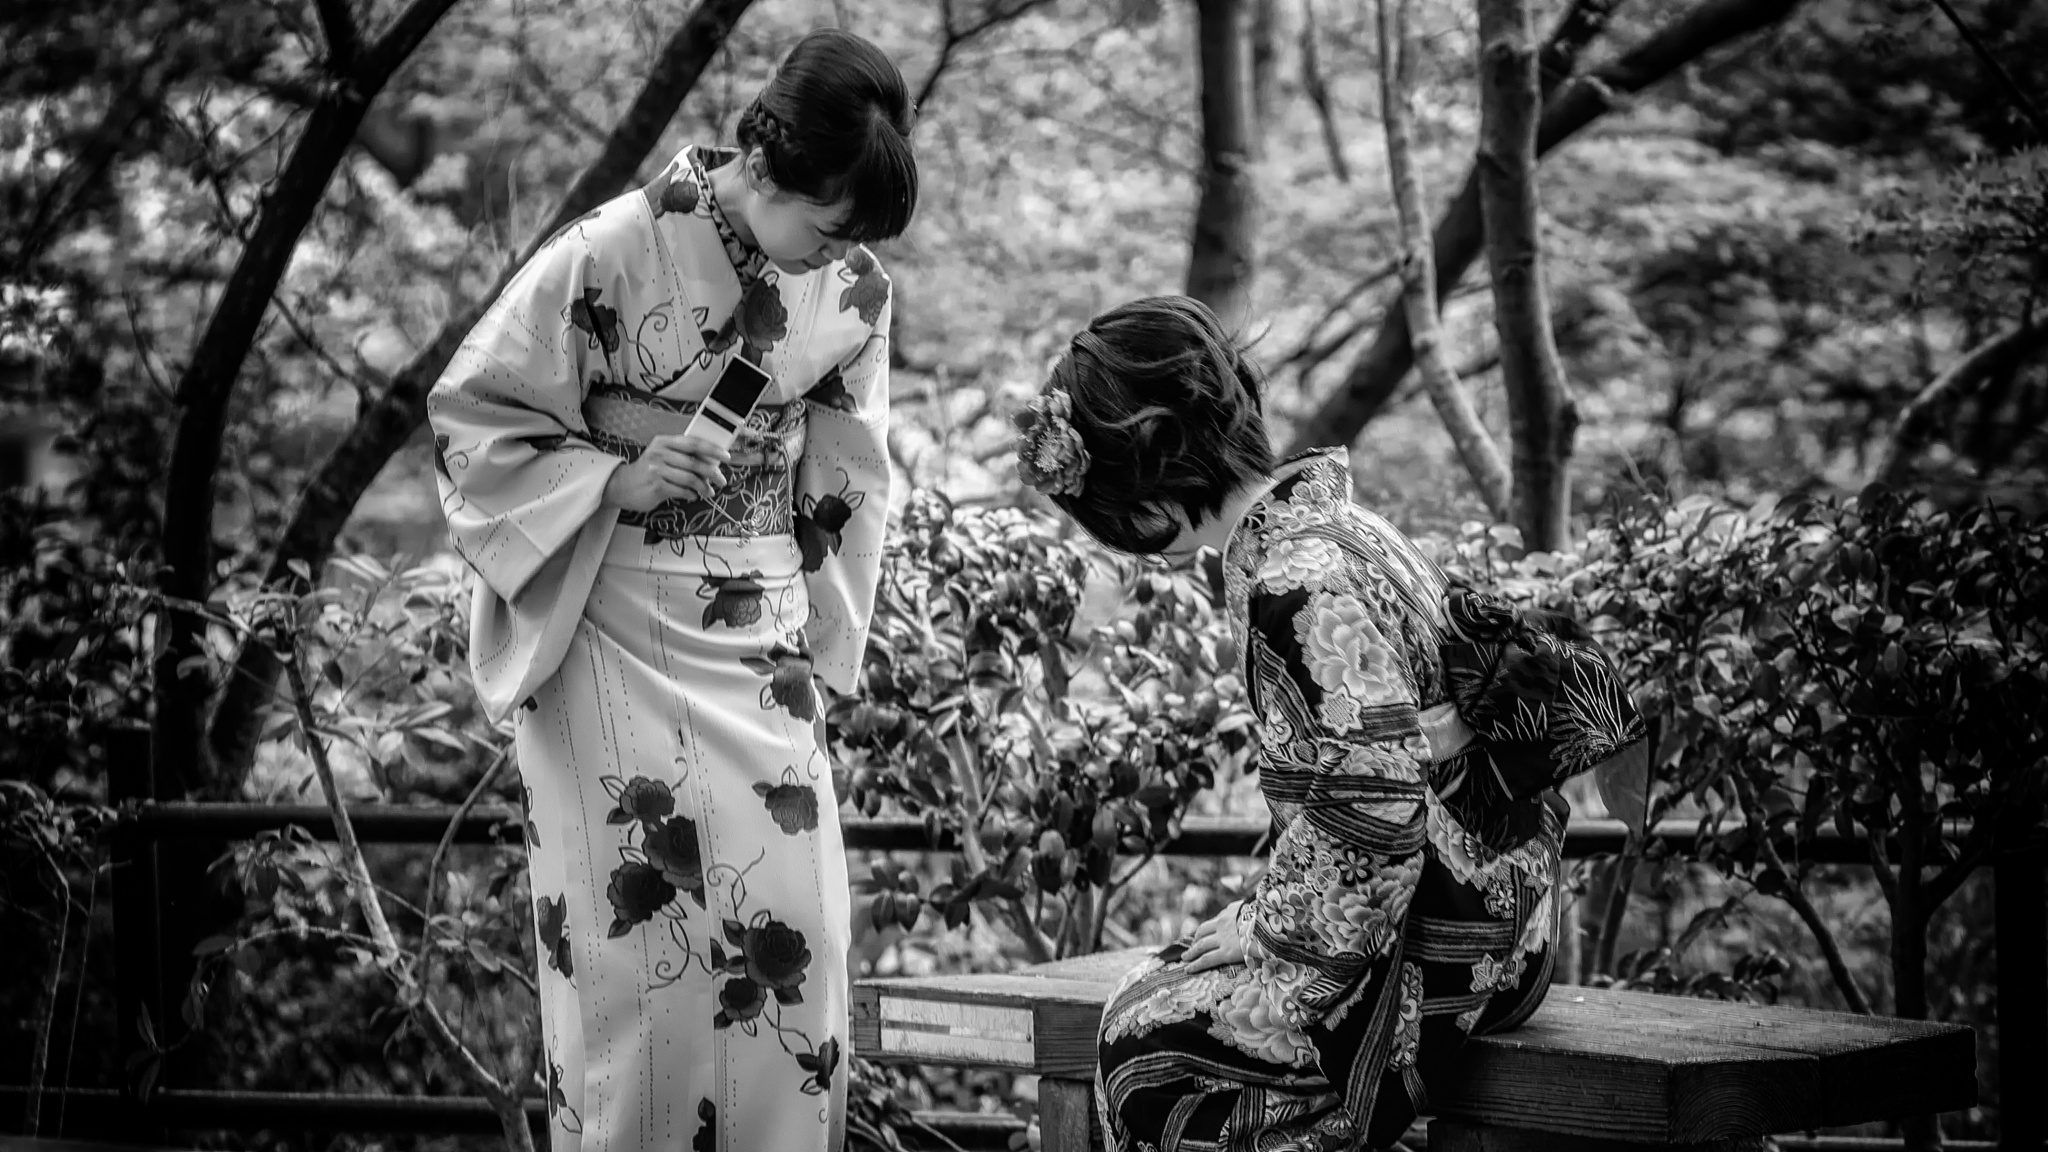 Old Meets New in Japan by Hameed S